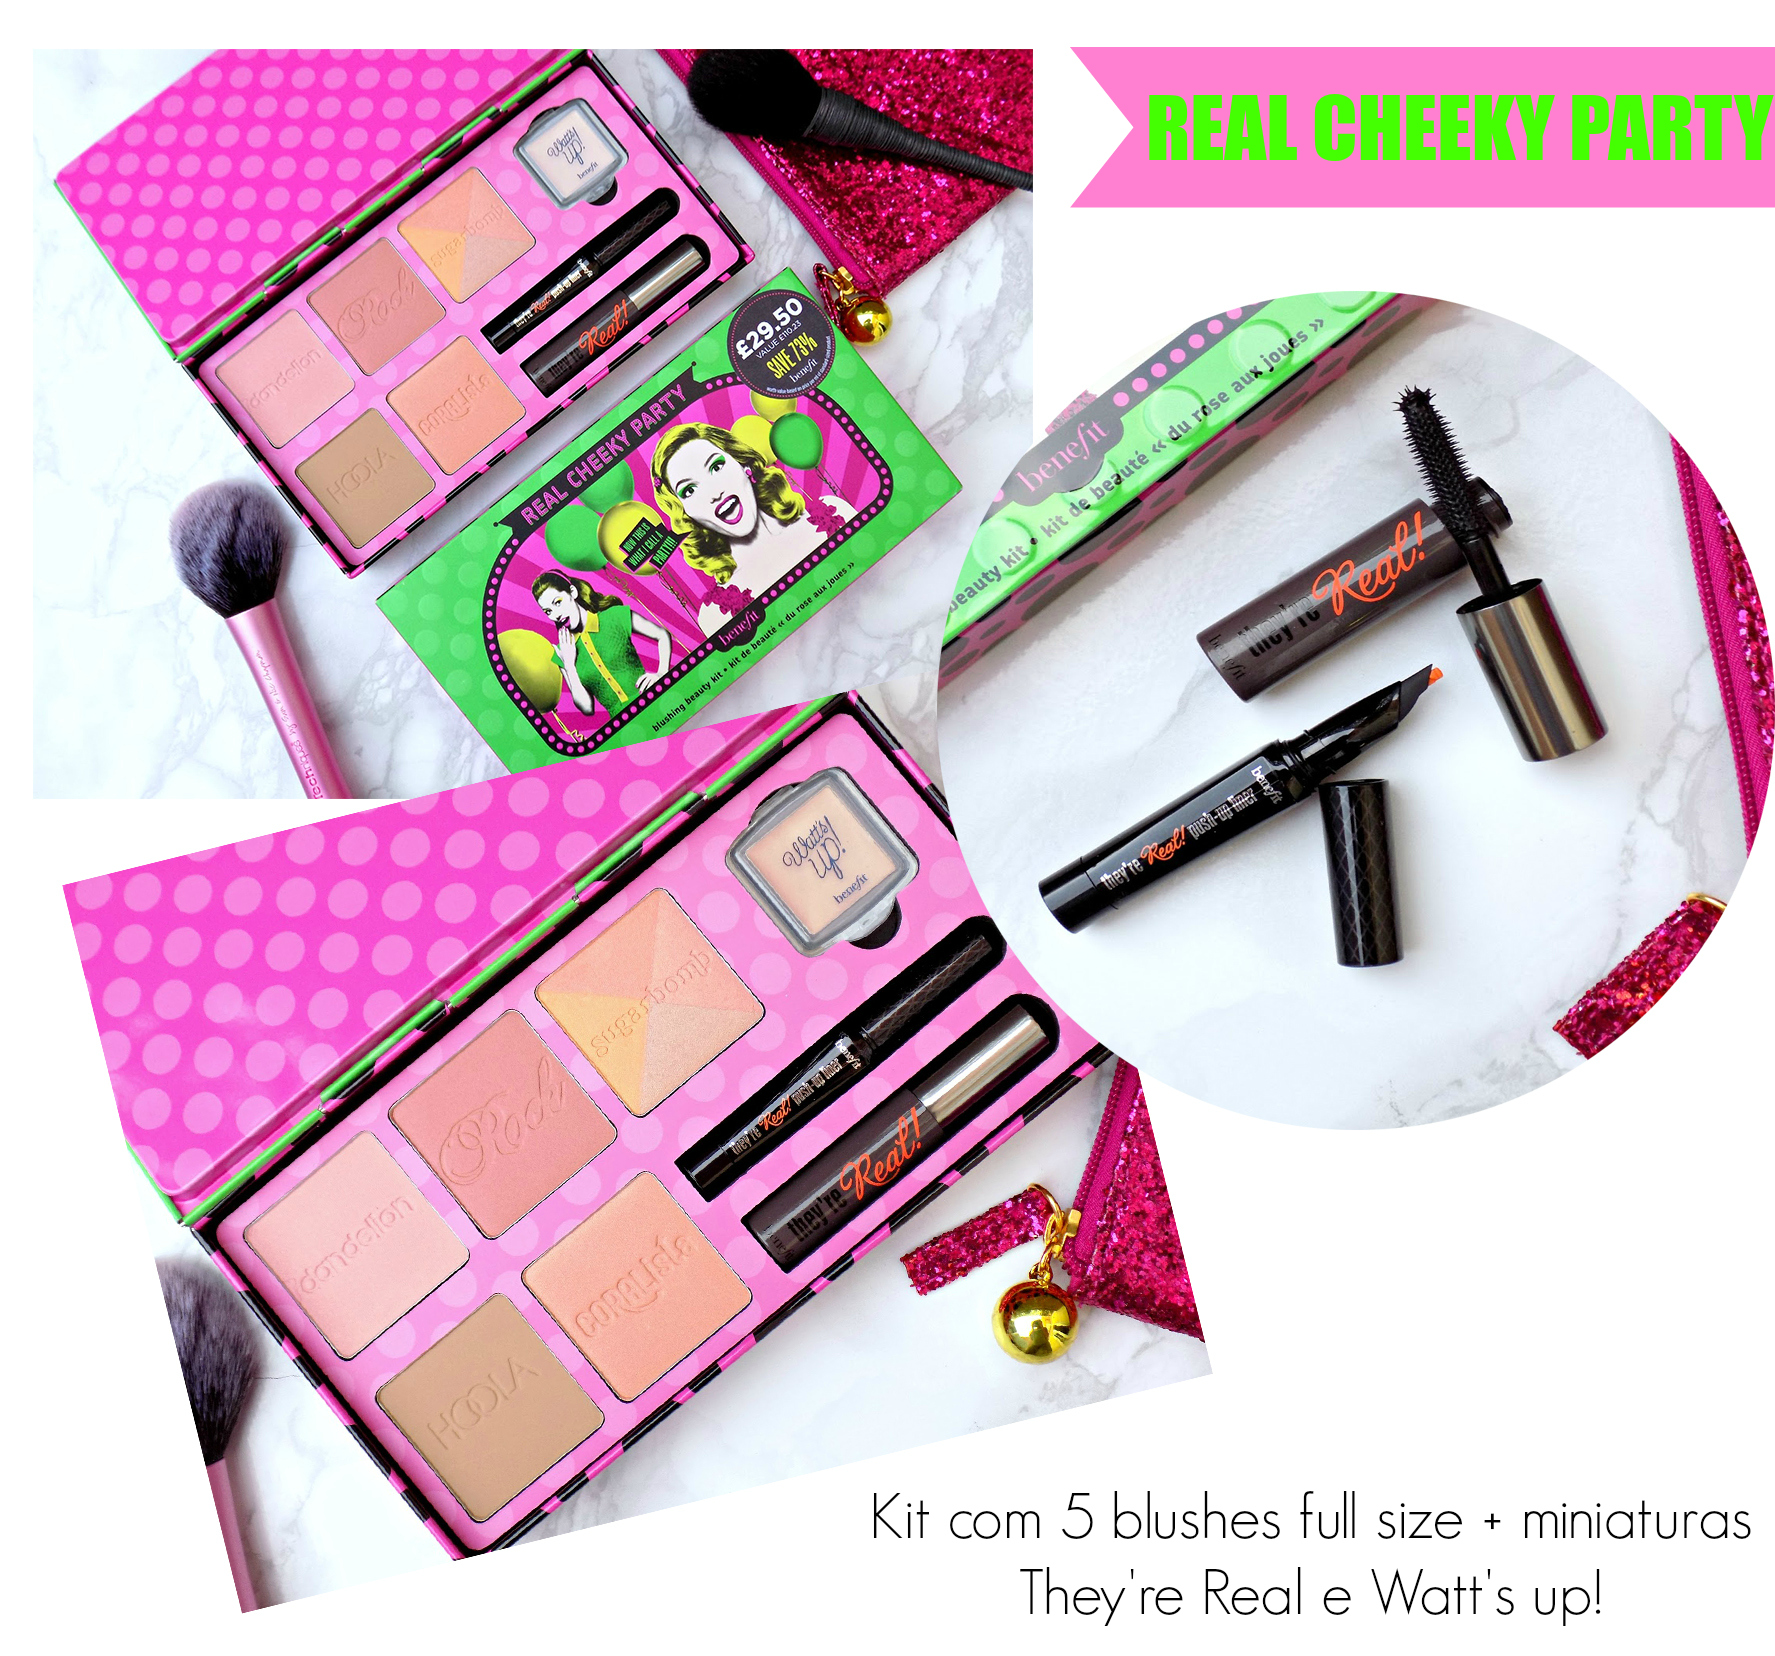 real cheeky party benefit mummysbeautycorner 2.jpg